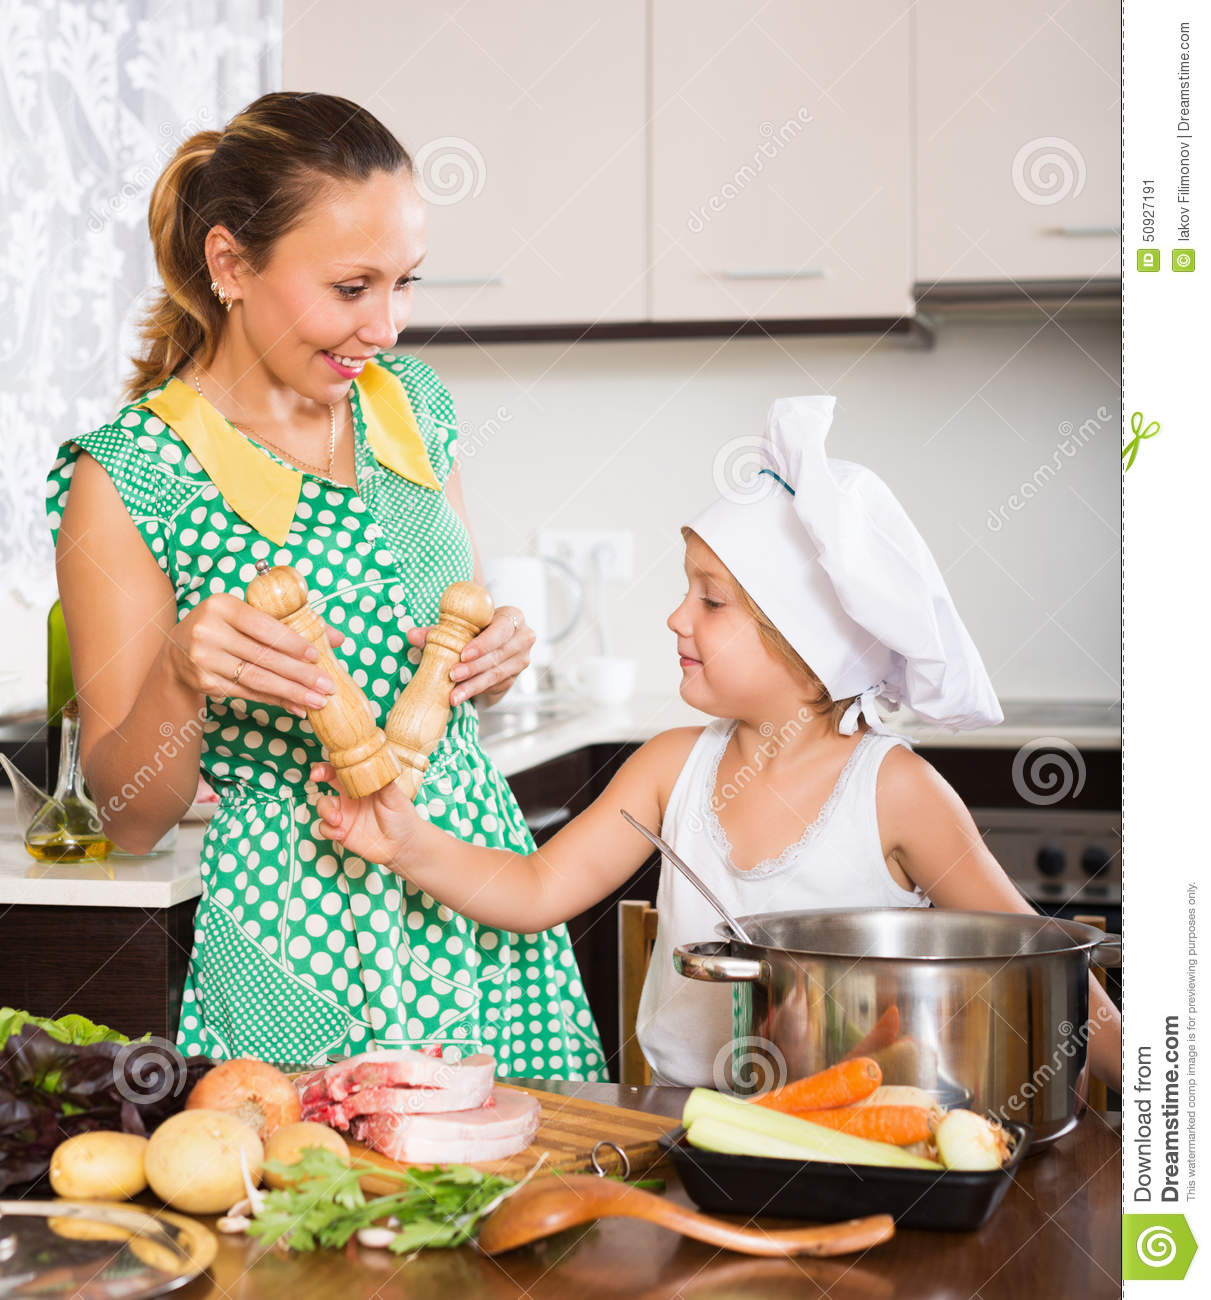 Mother With Baby Cooking At Kitchen Stock Image  Image of